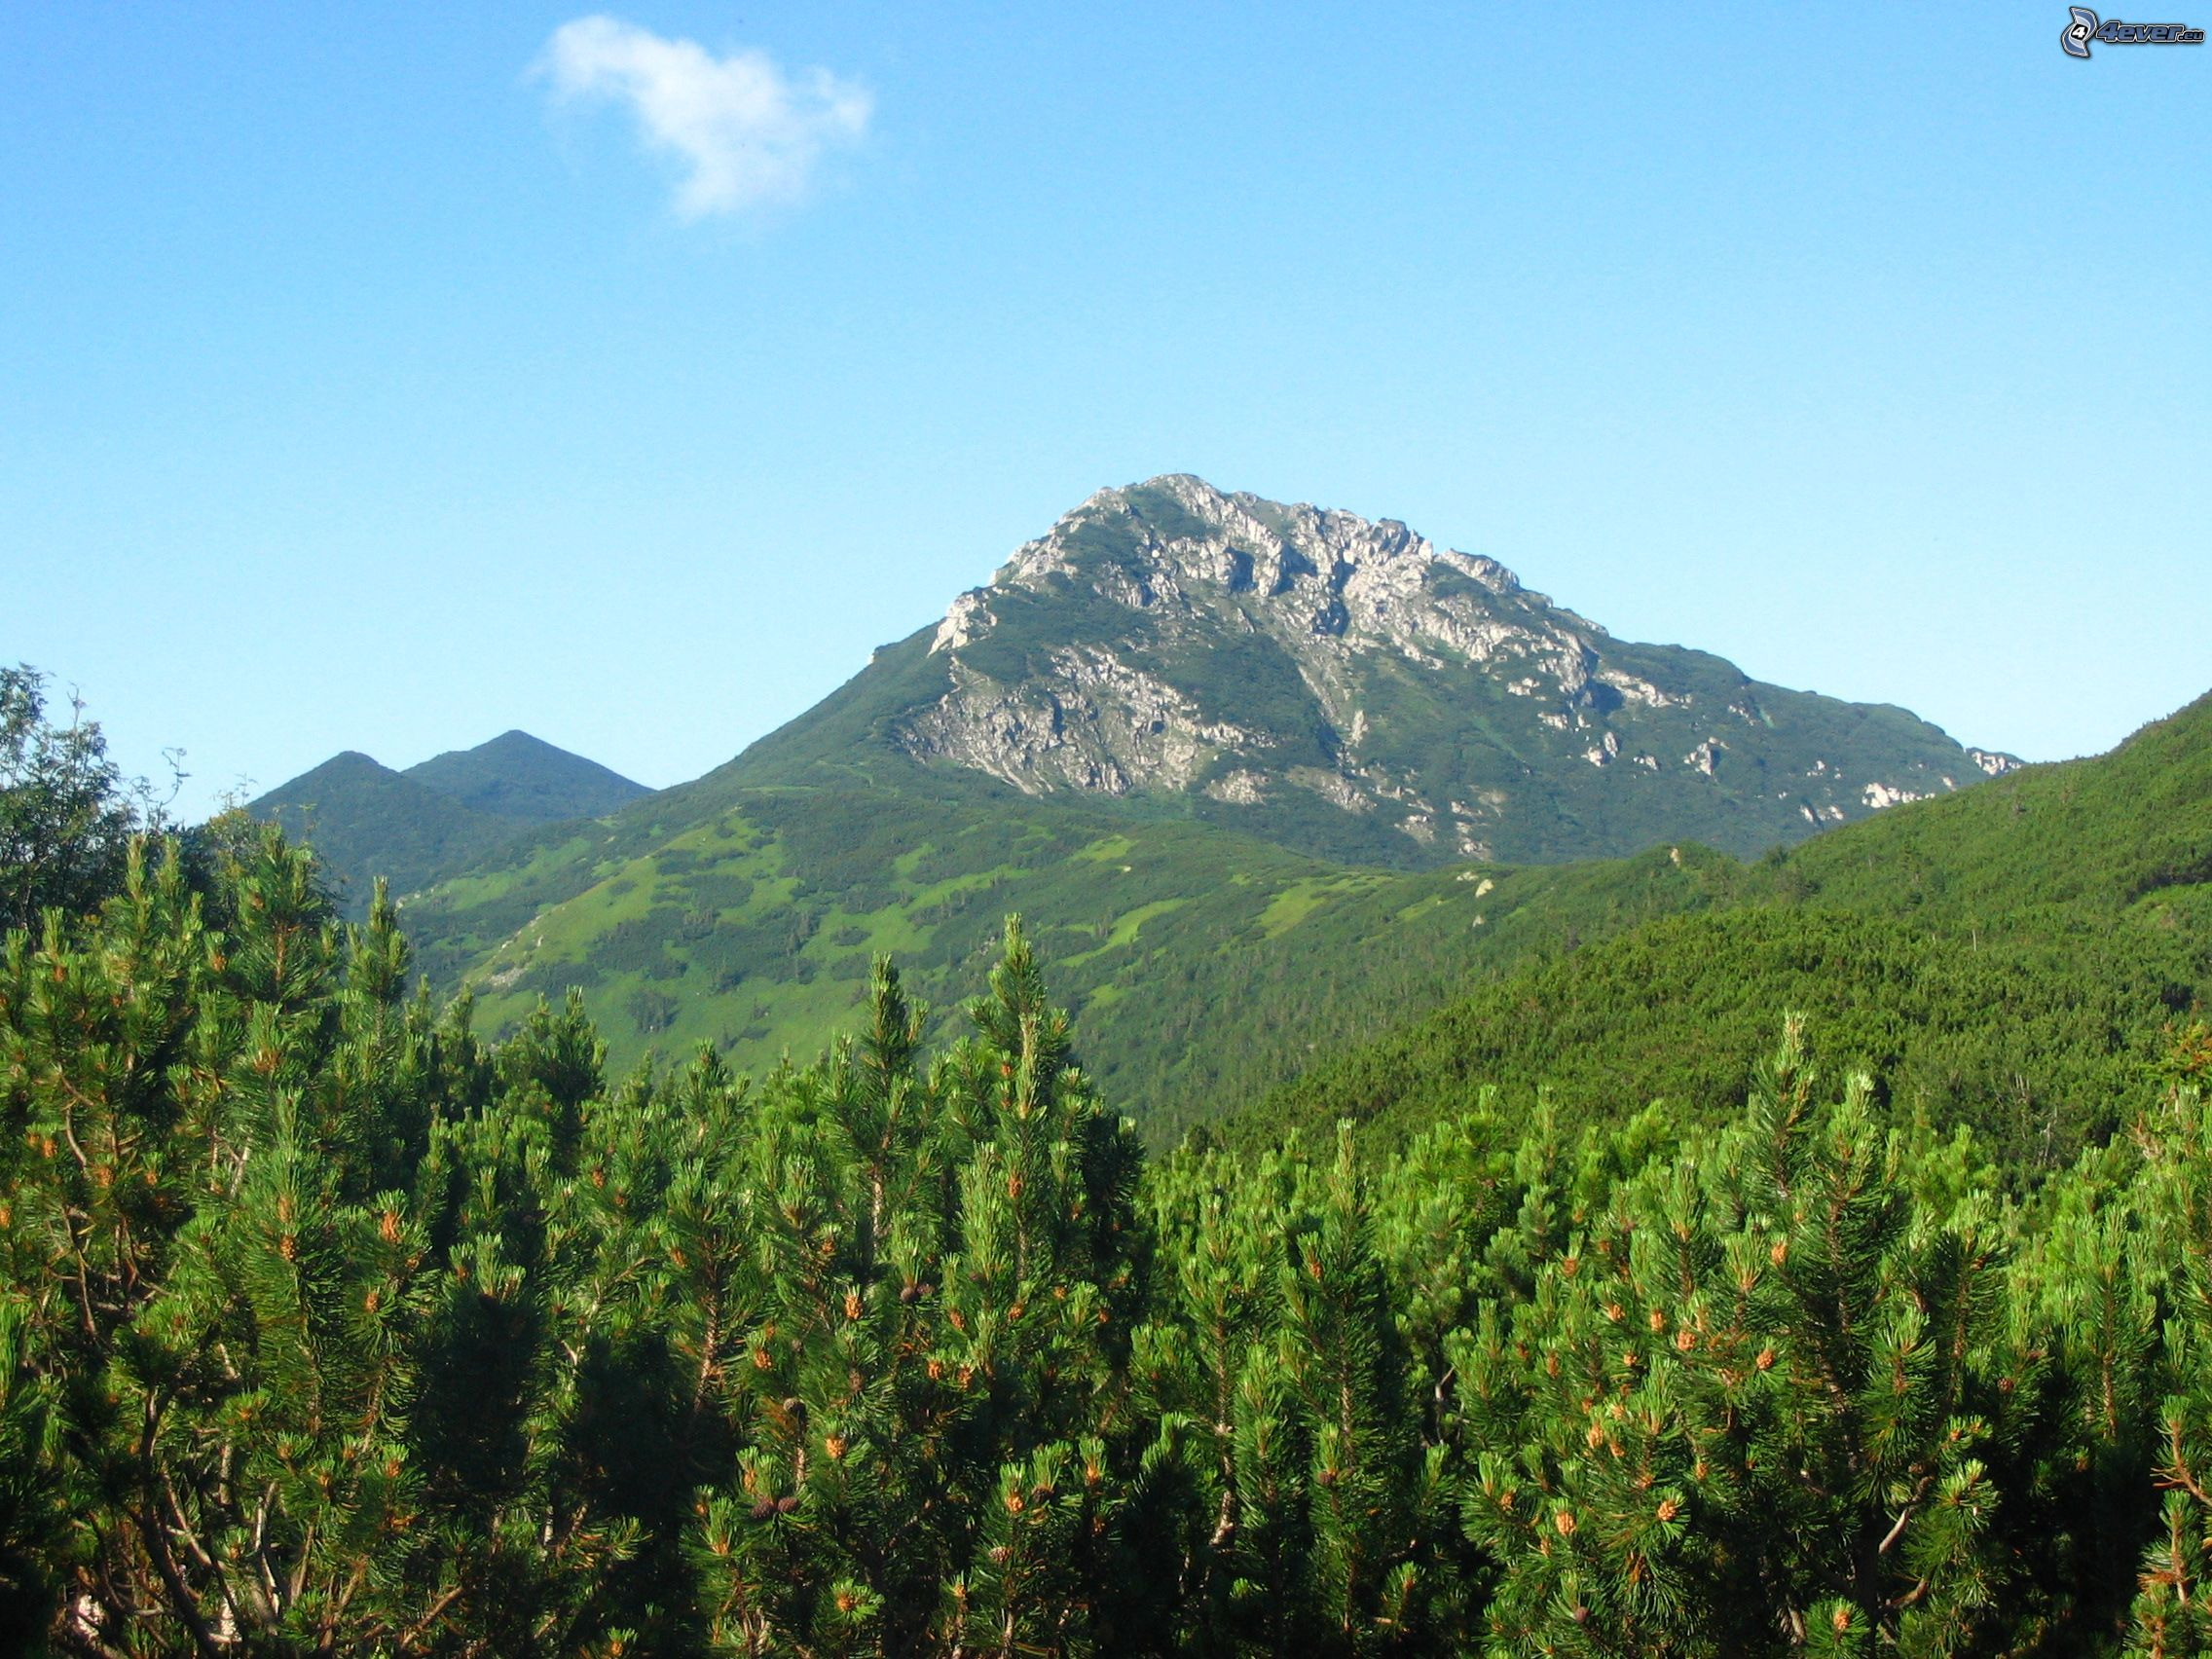 hill-rocky-hill-mountain-pine-forest-147365